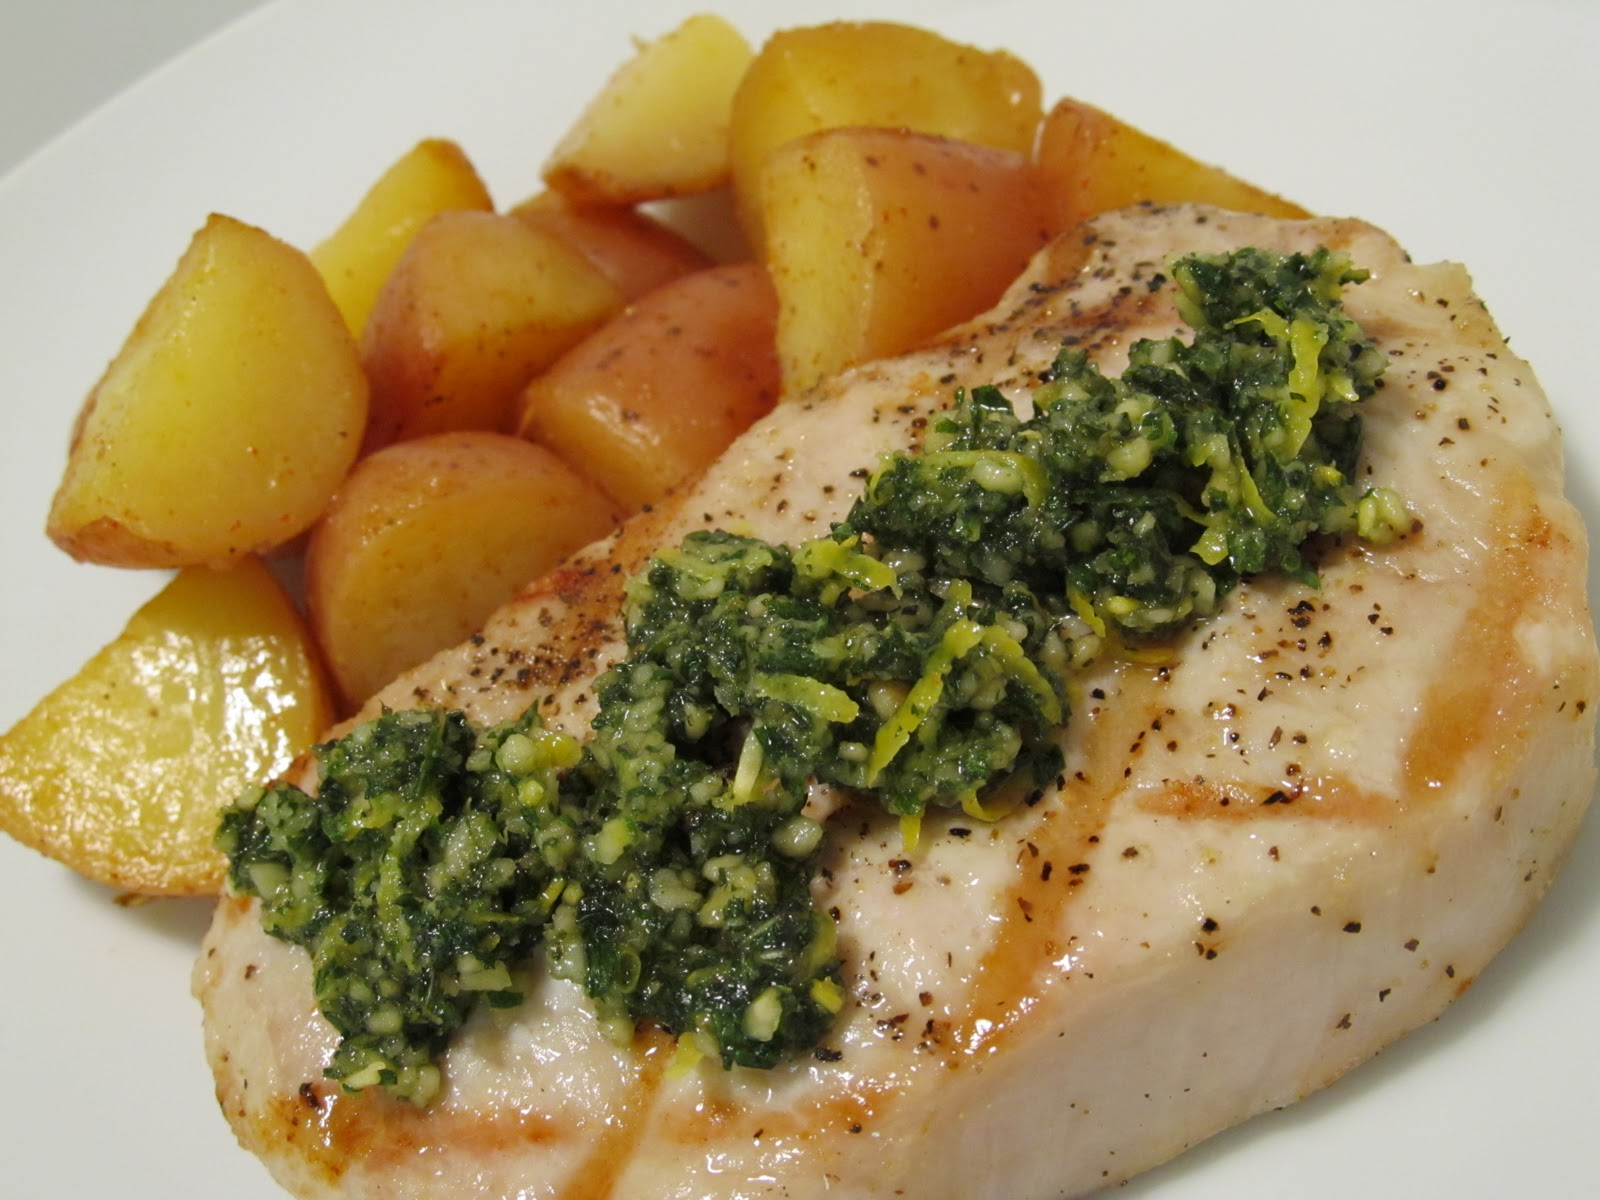 ... Food Journey: Grilled Pork Chops with Mint and Pine Nut Gremolata